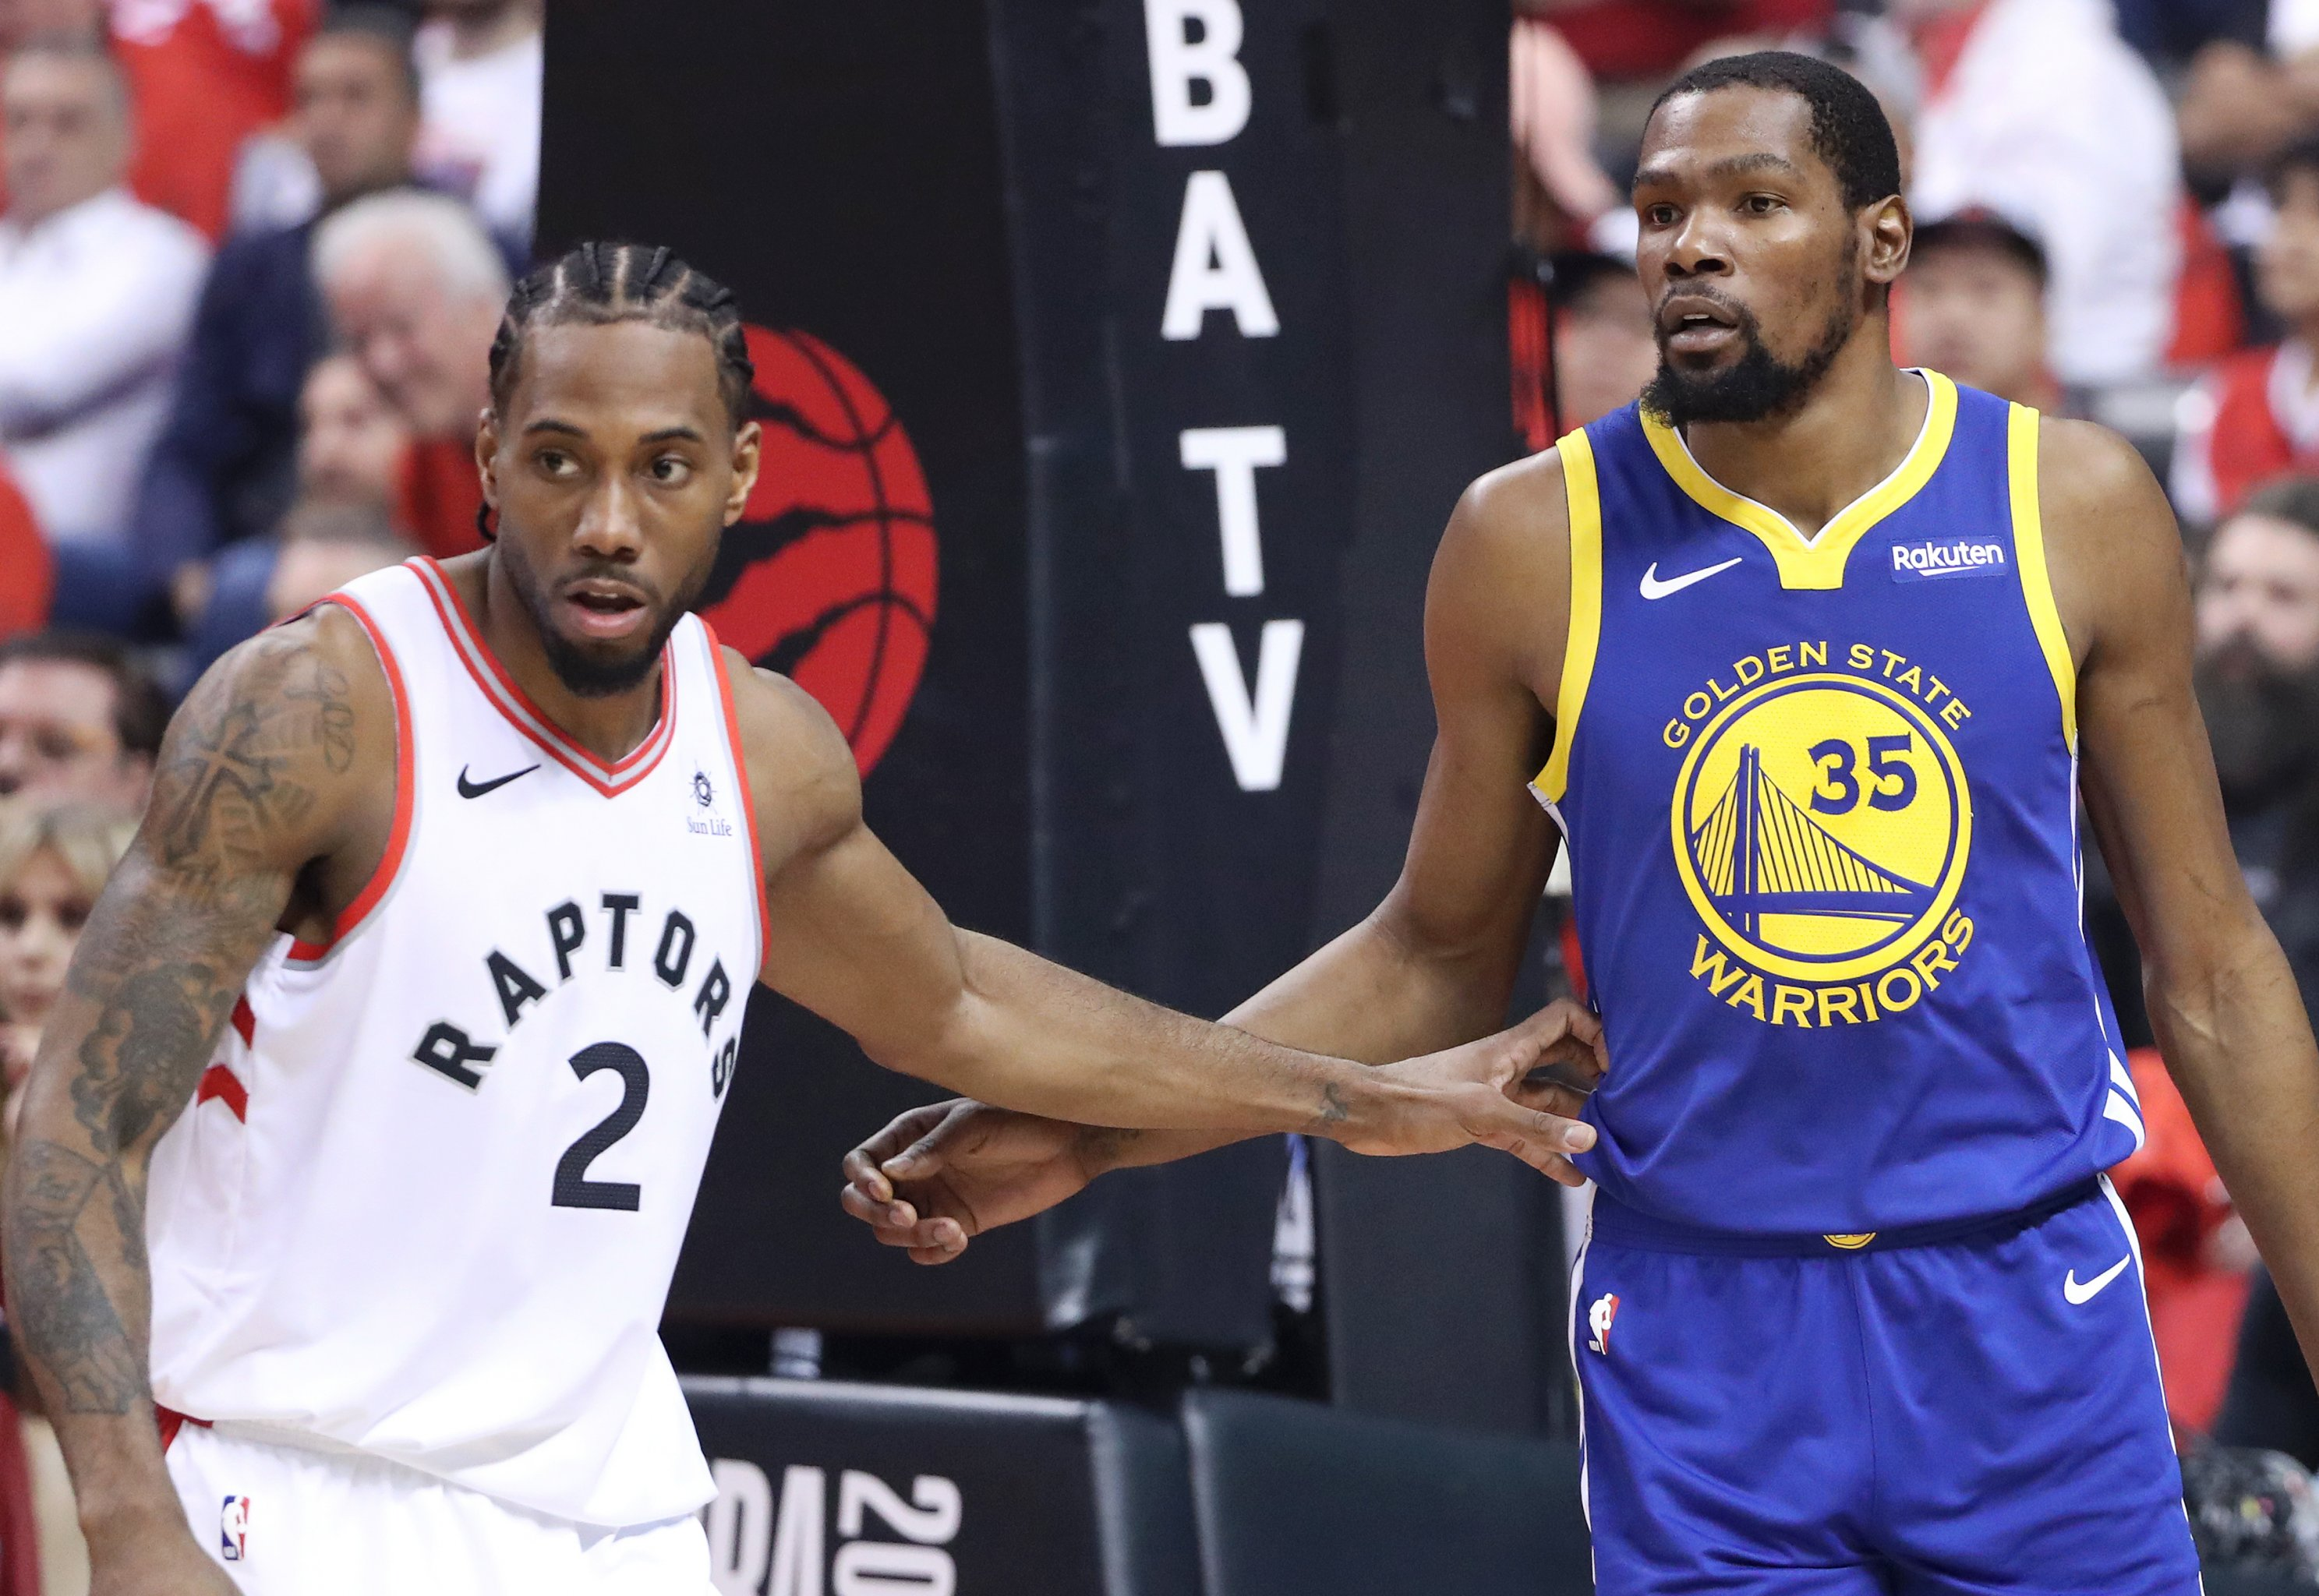 Best State To Move To 2019 The Best Players Likely on the Move in 2019 NBA Free Agency